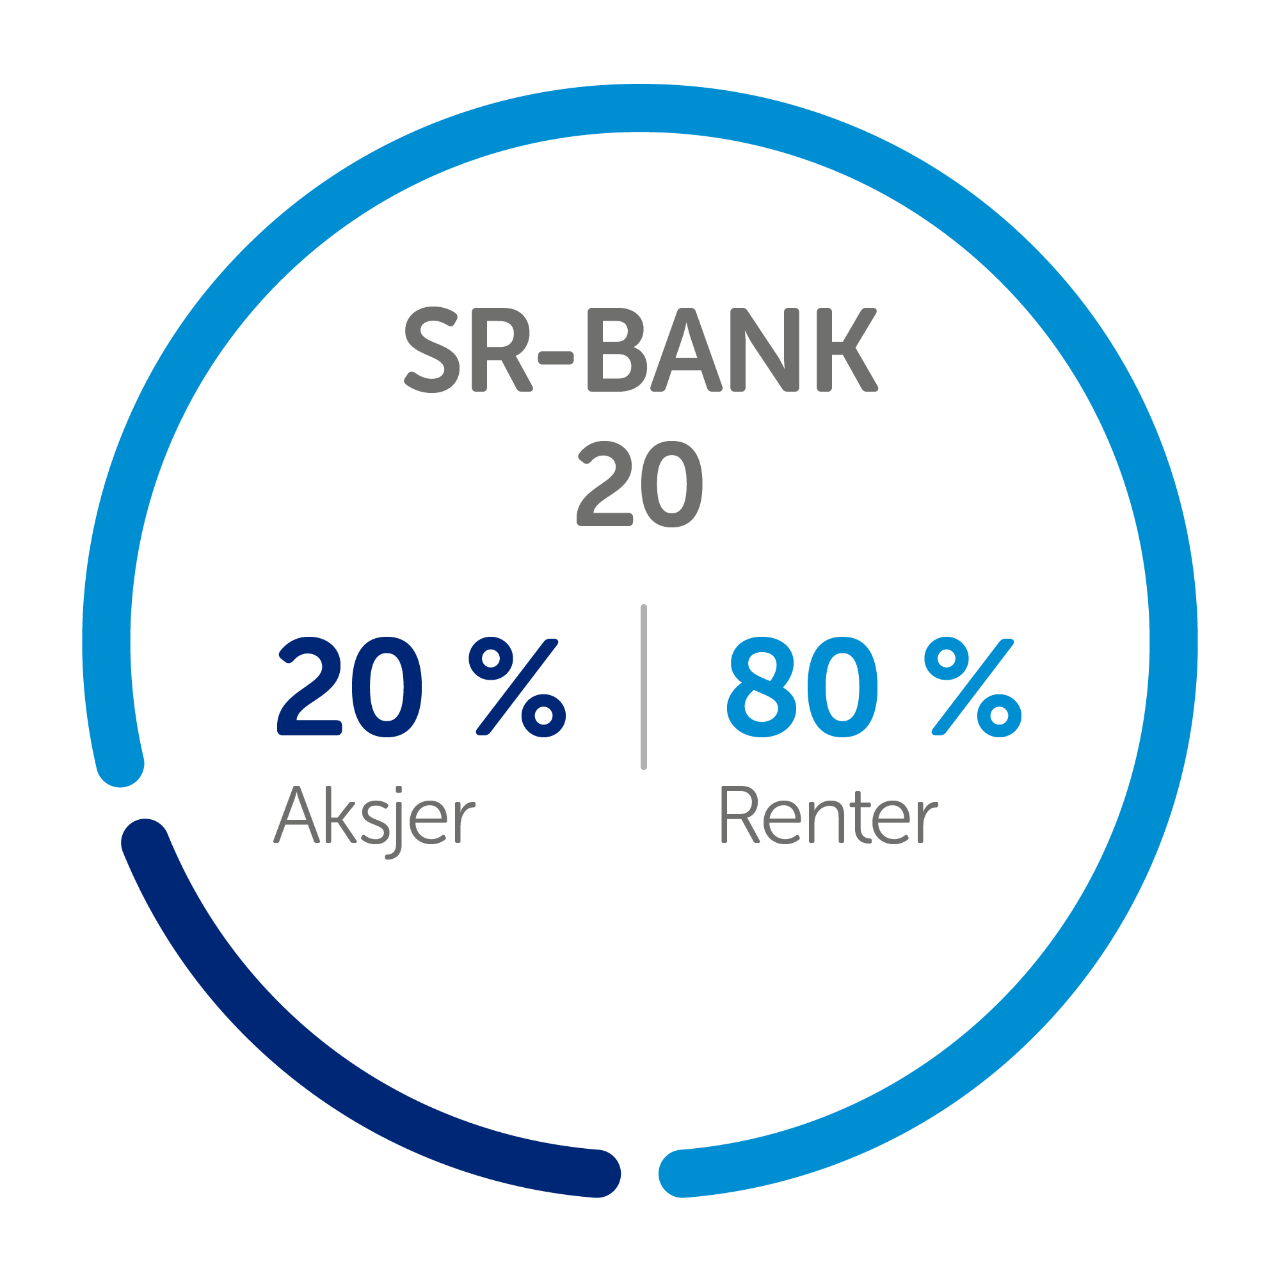 kakediagram fond sr-bank 20